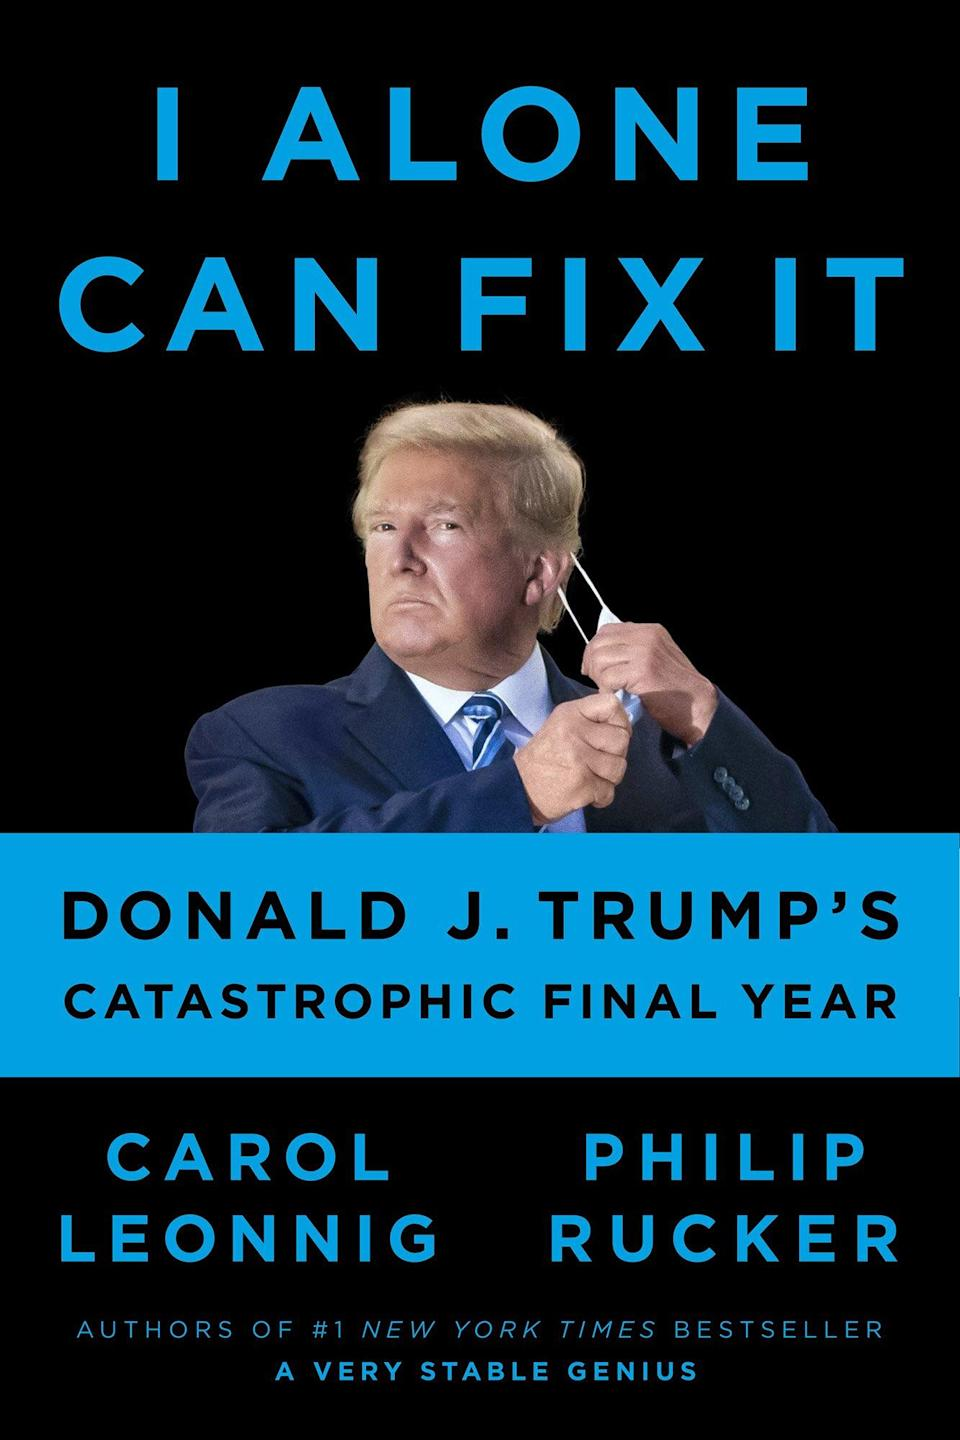 I Alone Can Fix It DONALD J. TRUMP'S CATASTROPHIC FINAL YEAR By CAROL LEONNIG and PHILIP RUCKER